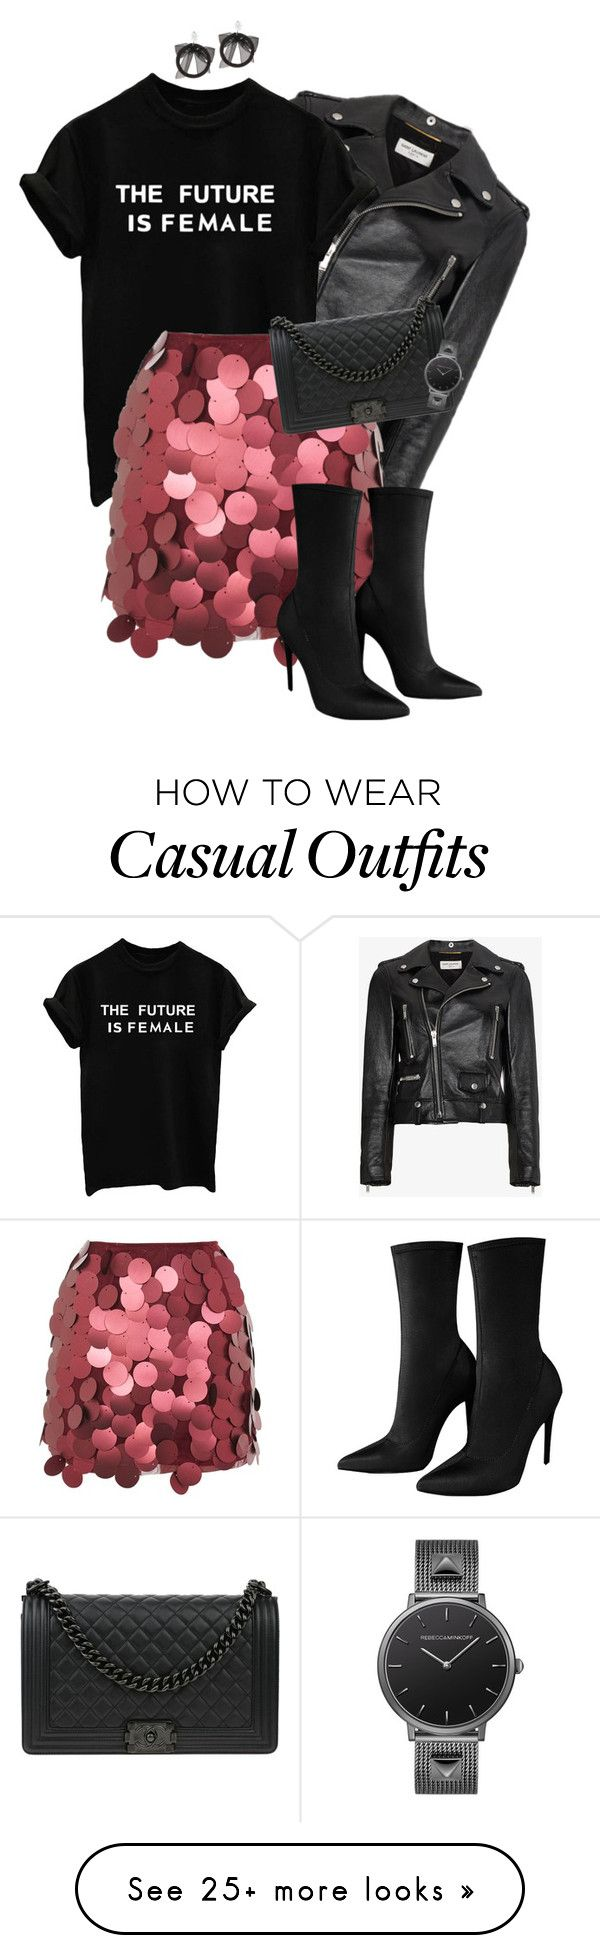 """""""Sequin skirt #fashion"""" by ashley-loves on Polyvore featuring Yves Saint Laurent, Motel, Chanel and Fallon"""